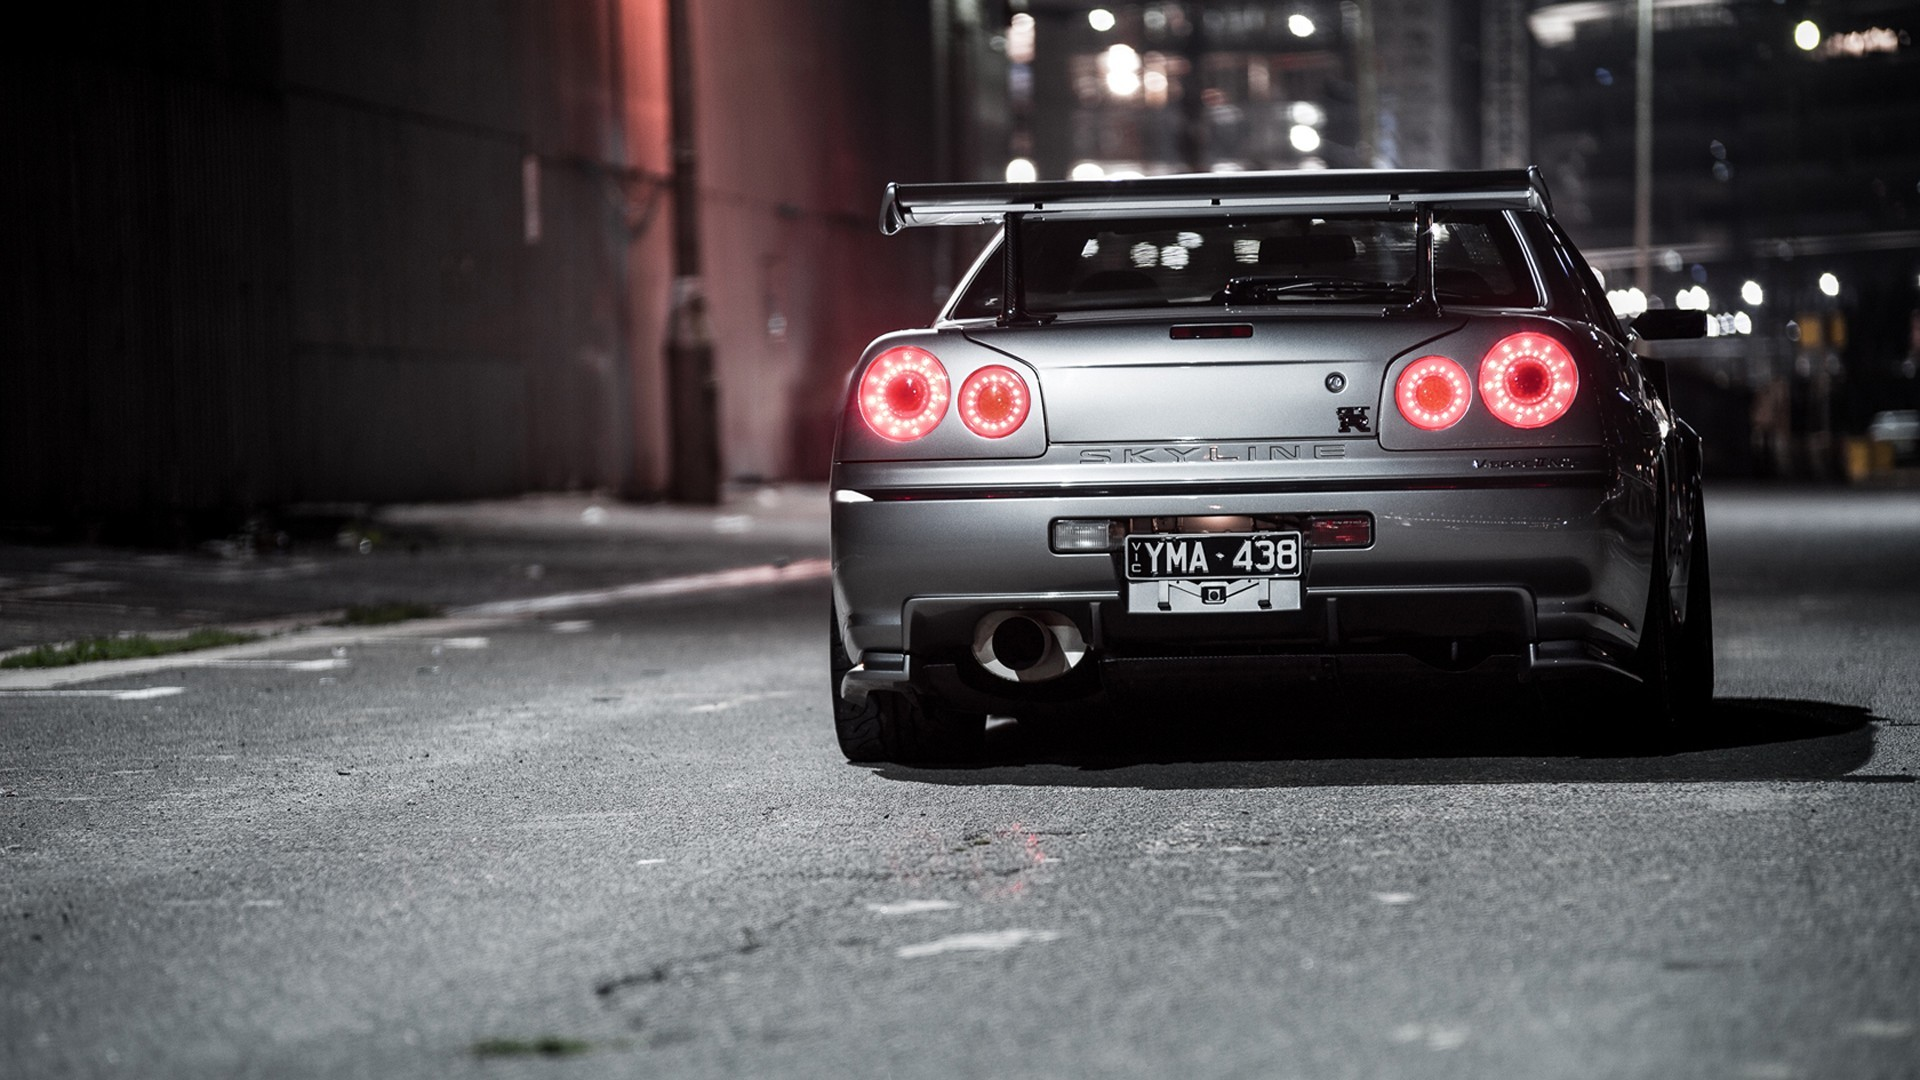 nissan skyline gtr r34 wallpaper wallpapersafari. Black Bedroom Furniture Sets. Home Design Ideas